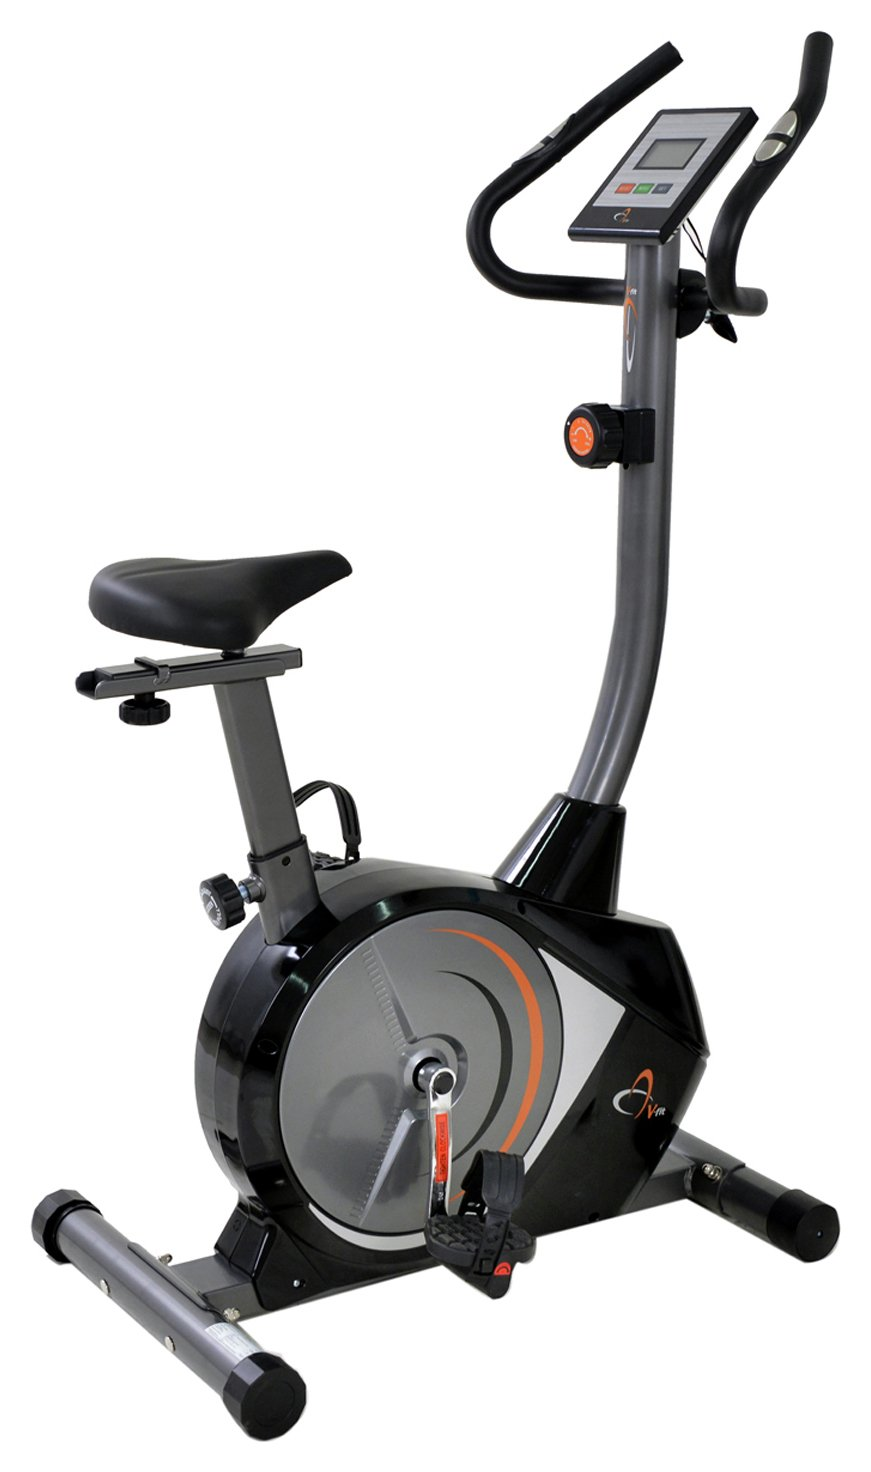 V Fit Cy090 Manual Magnetic Upright Exercise Bike Review